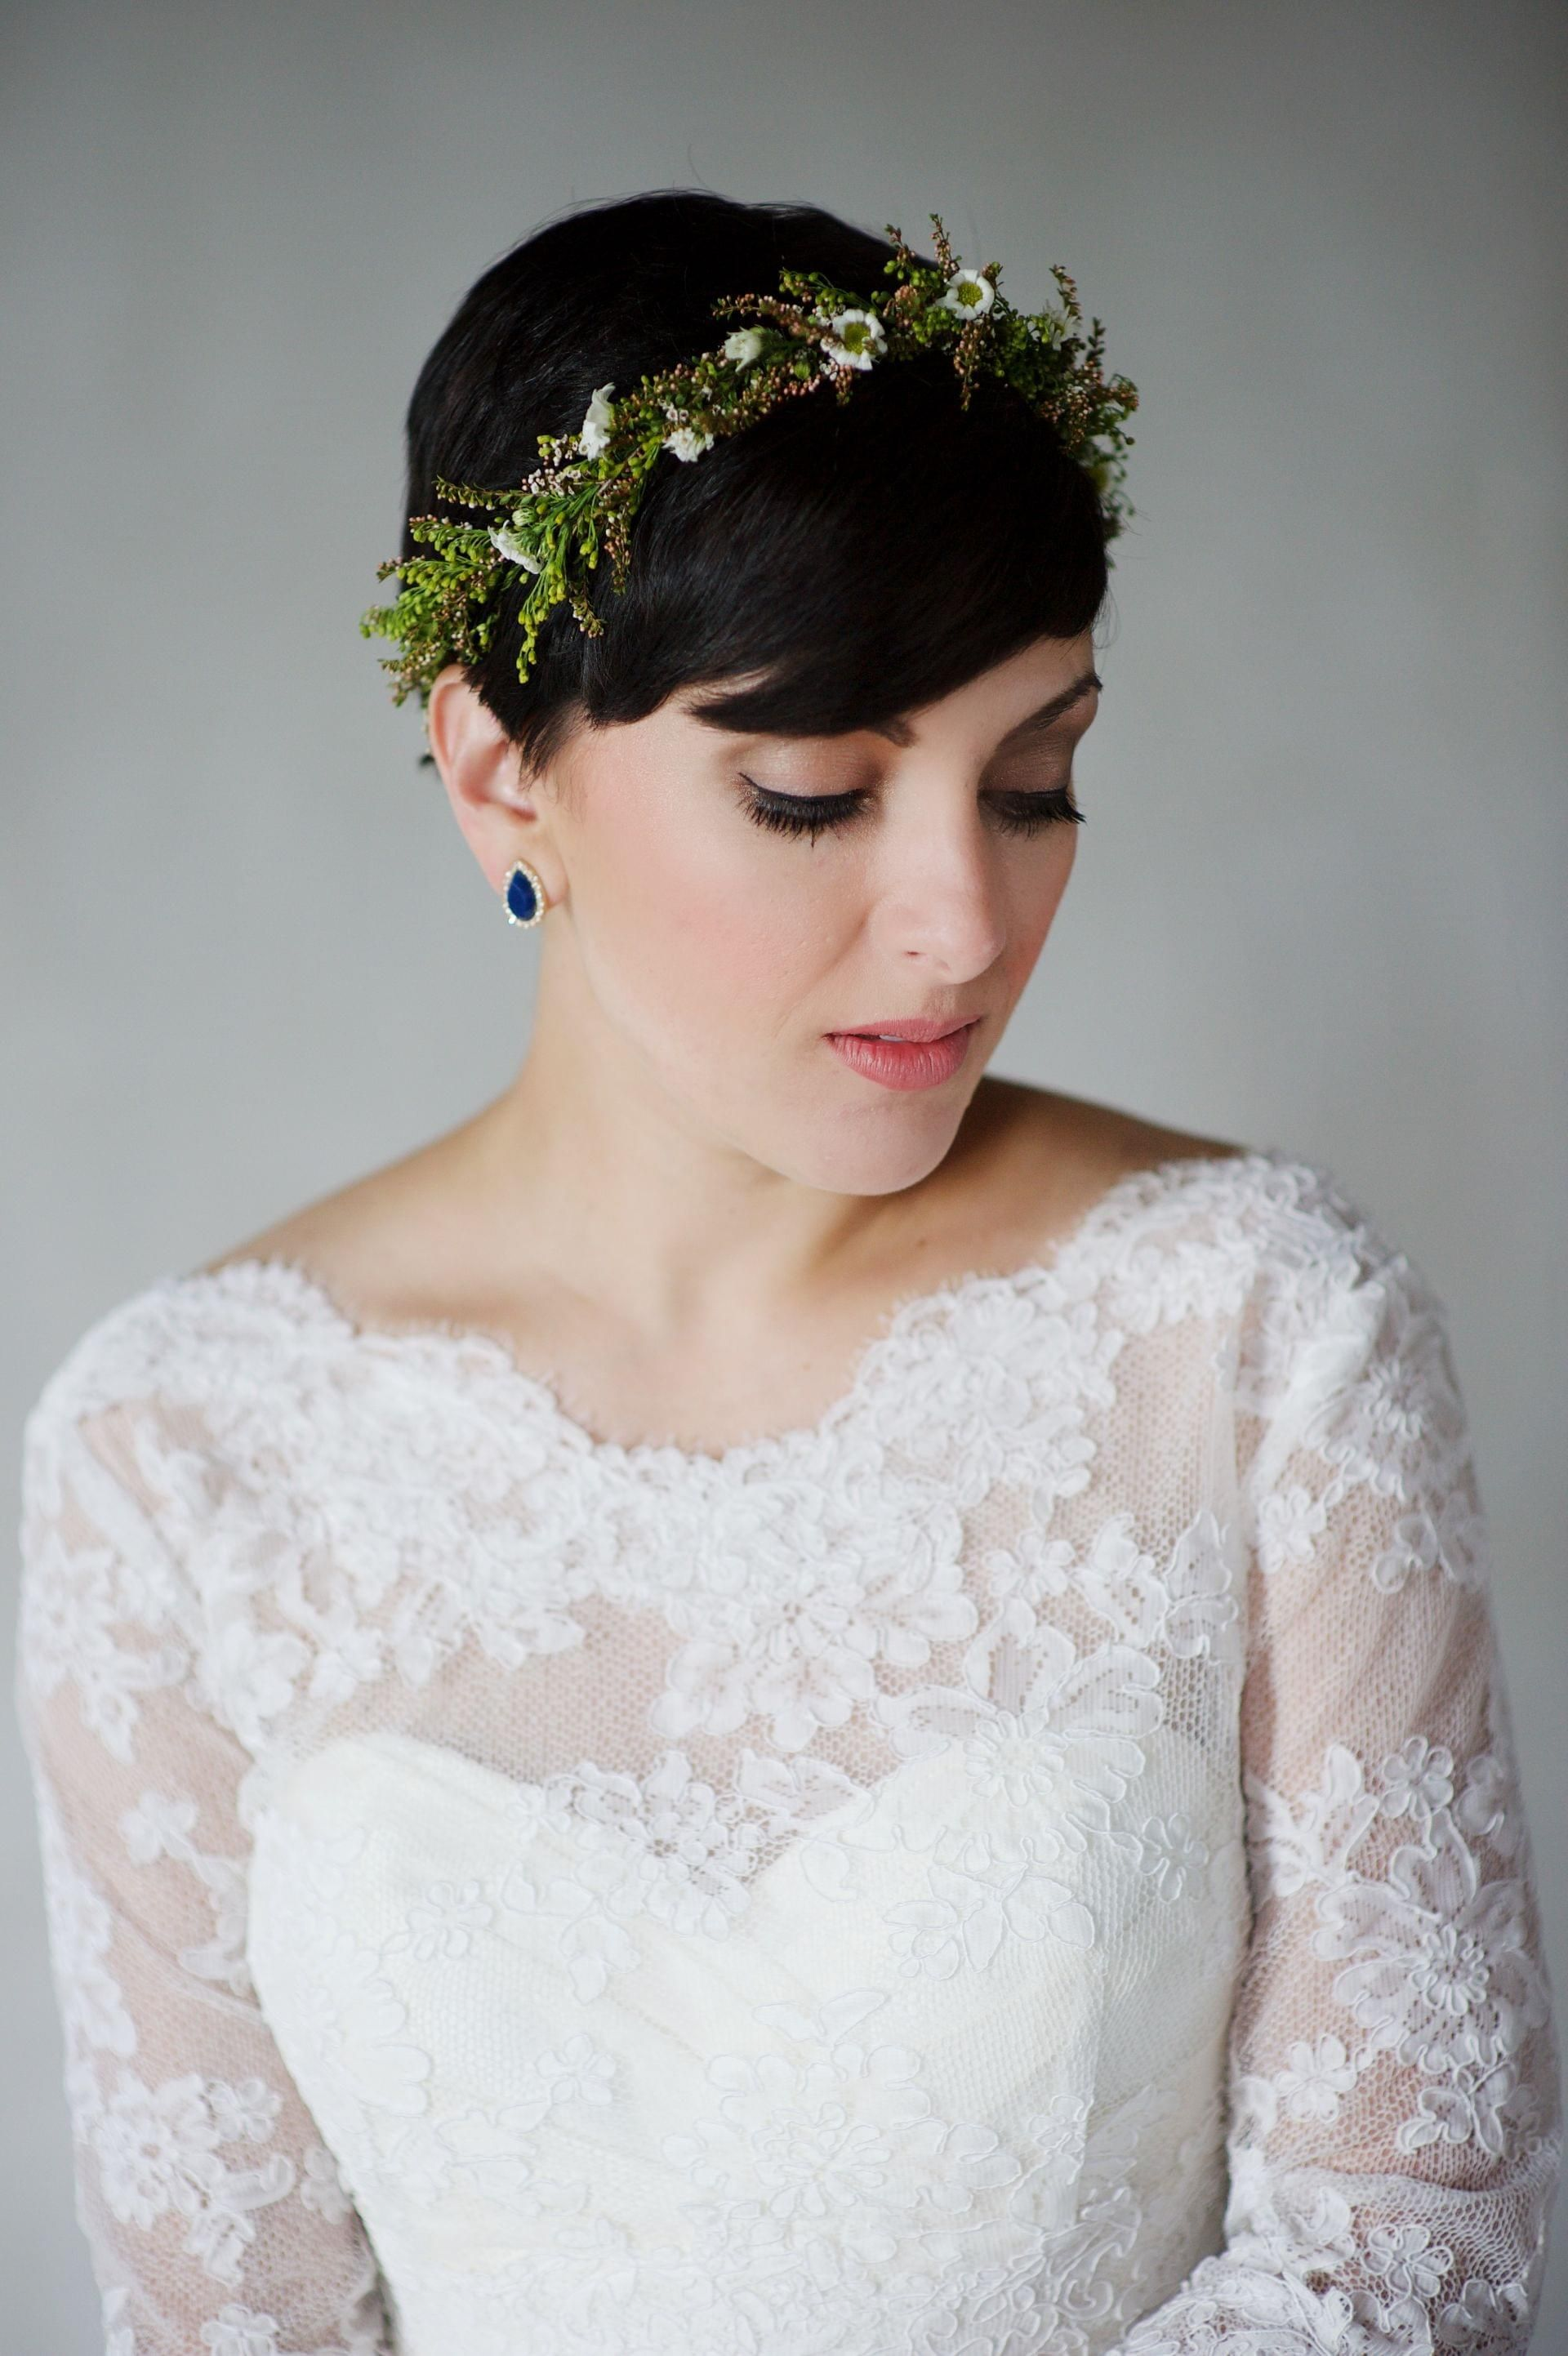 pixie cut, short bridal hairstyle, natural green flower